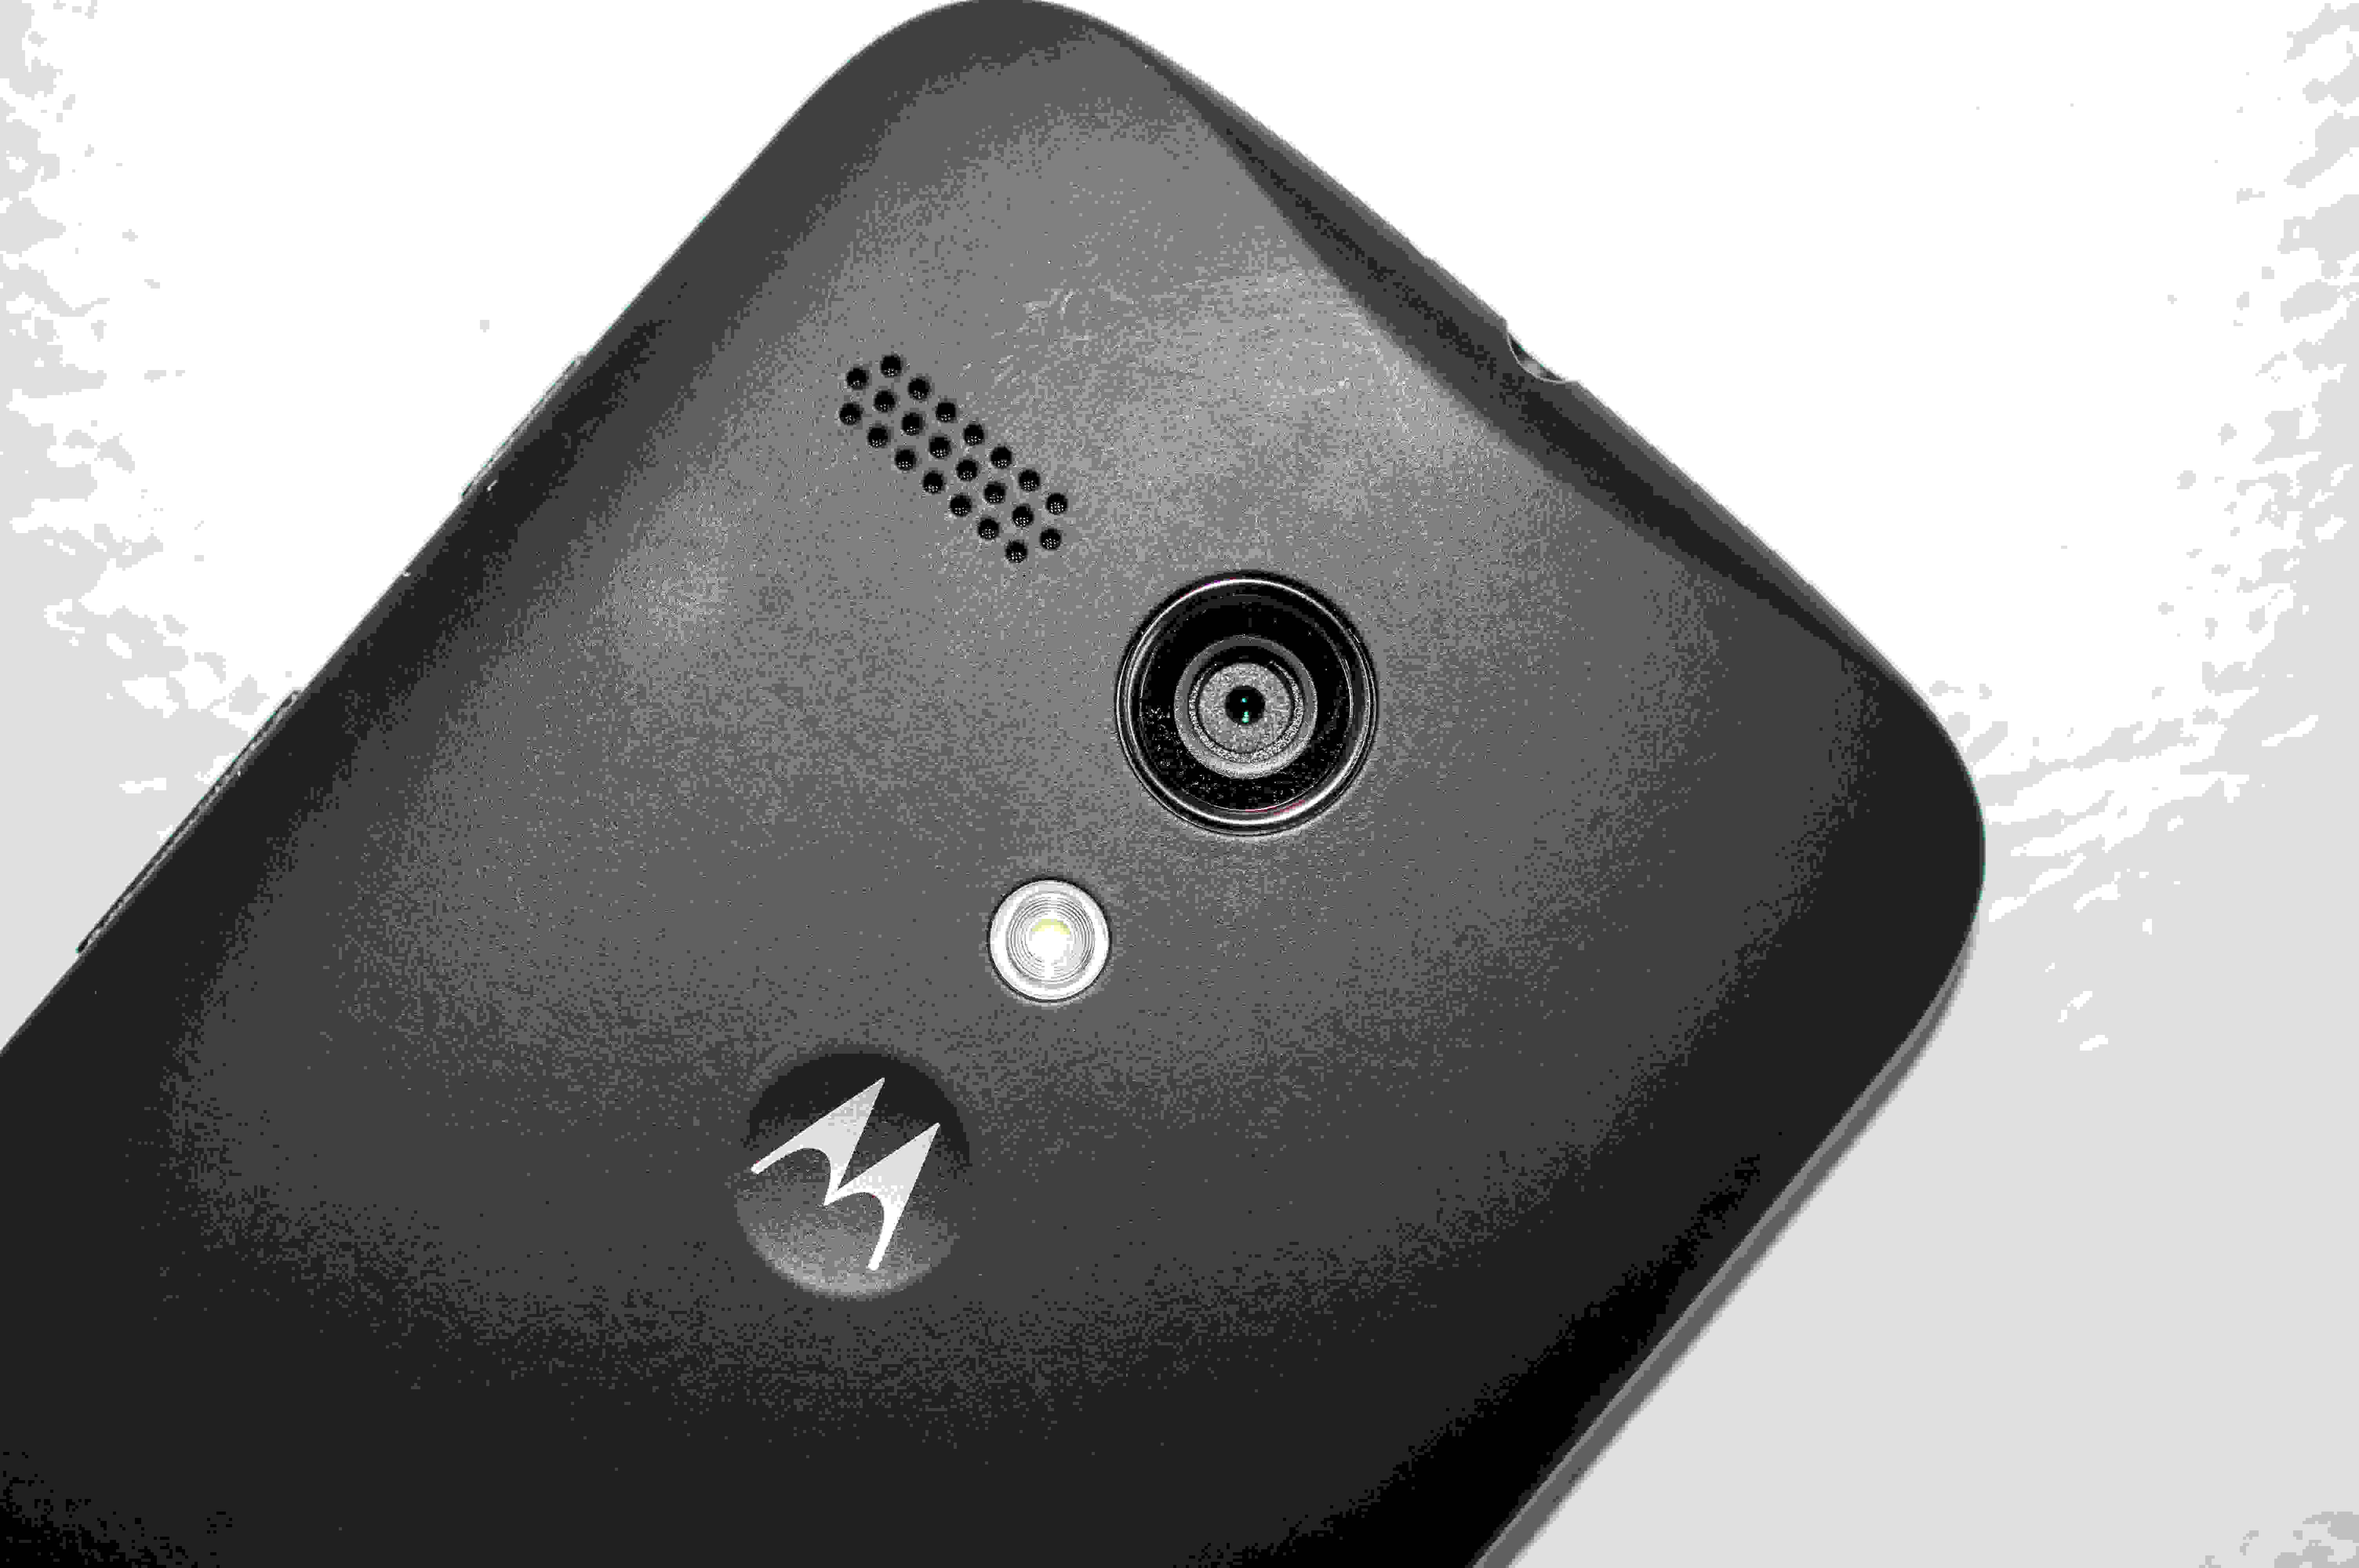 A photo of the Motorola Moto G with 4G LTE's camera.